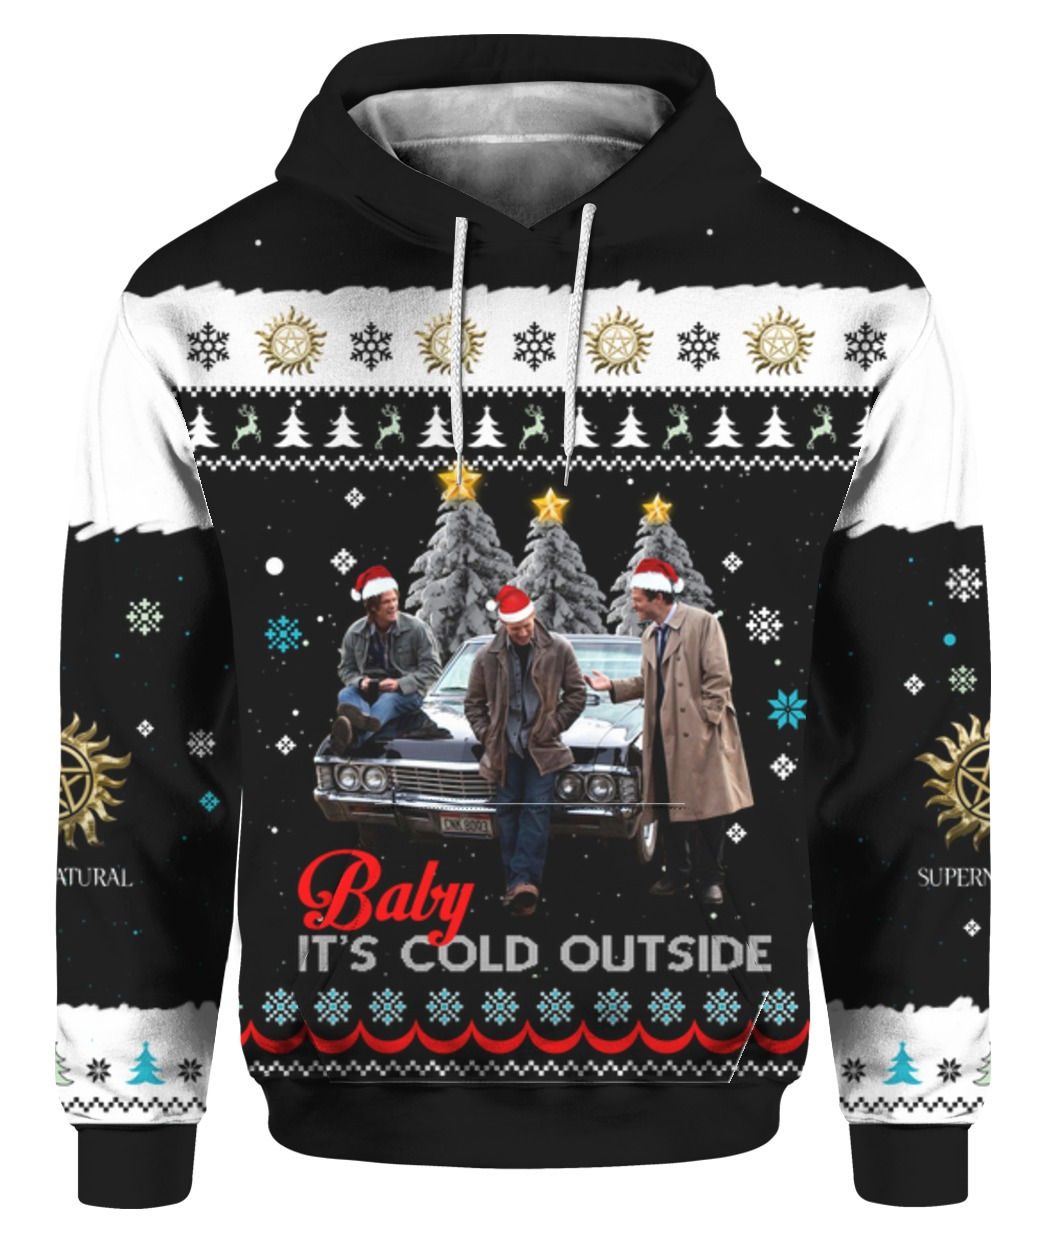 Supernatural baby it's cold outside ugly christmas sweater - maria